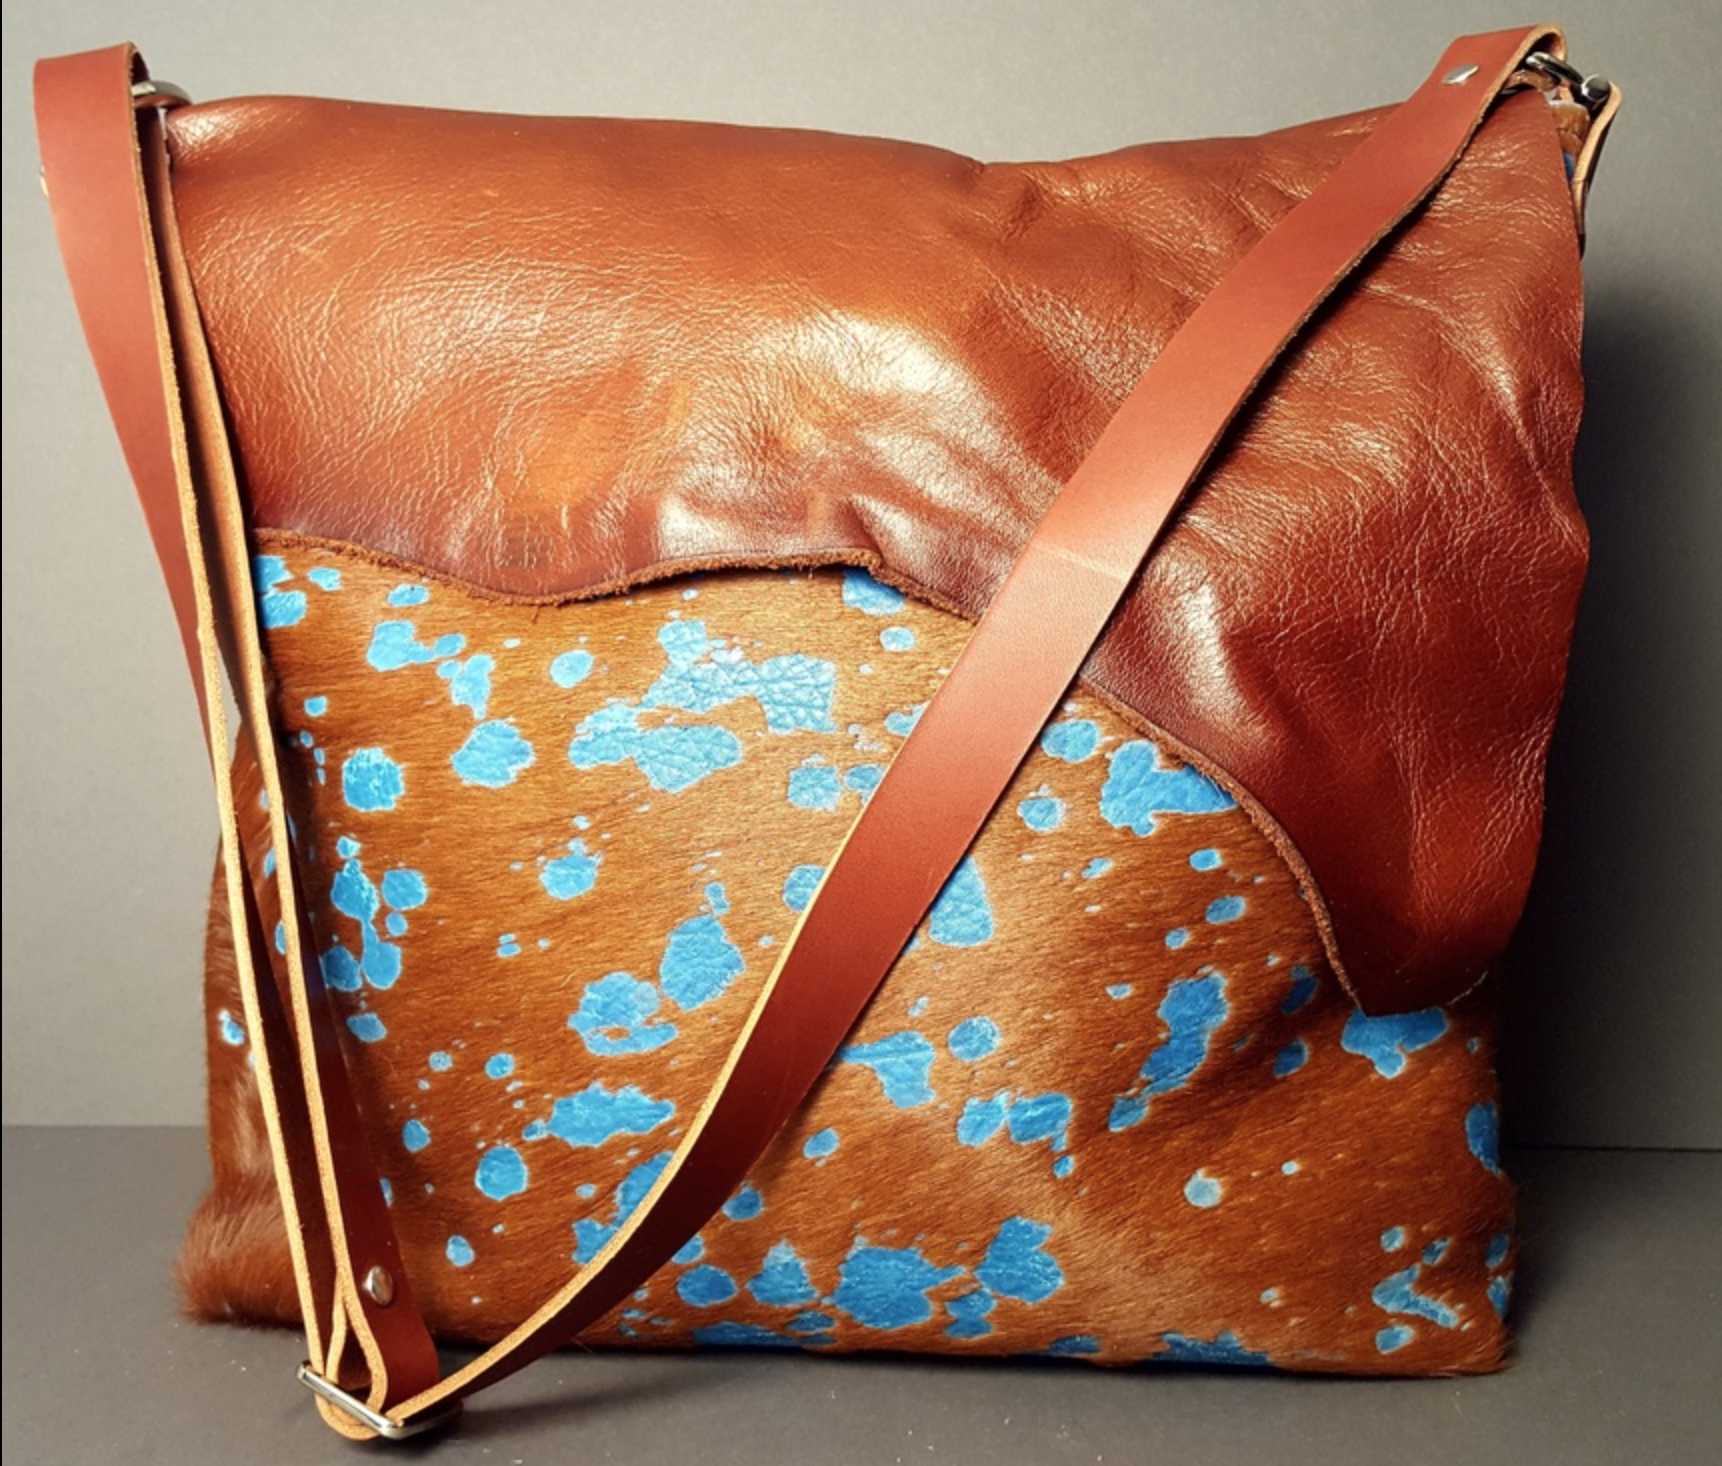 Kerrin Pogozelski - http://www.buxiejobags.comI made leather bags and accessories using uniquely treated leather and cowhide. I love to feature brand marks and scars to create absolute OOAK pieces with a rustic/refined voice.